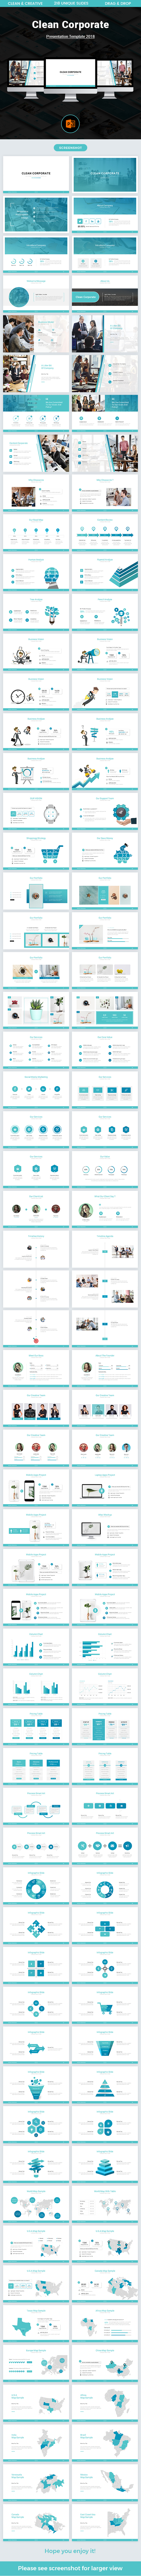 Clean Corporate Powerpoint Template 2018 - Business PowerPoint Templates